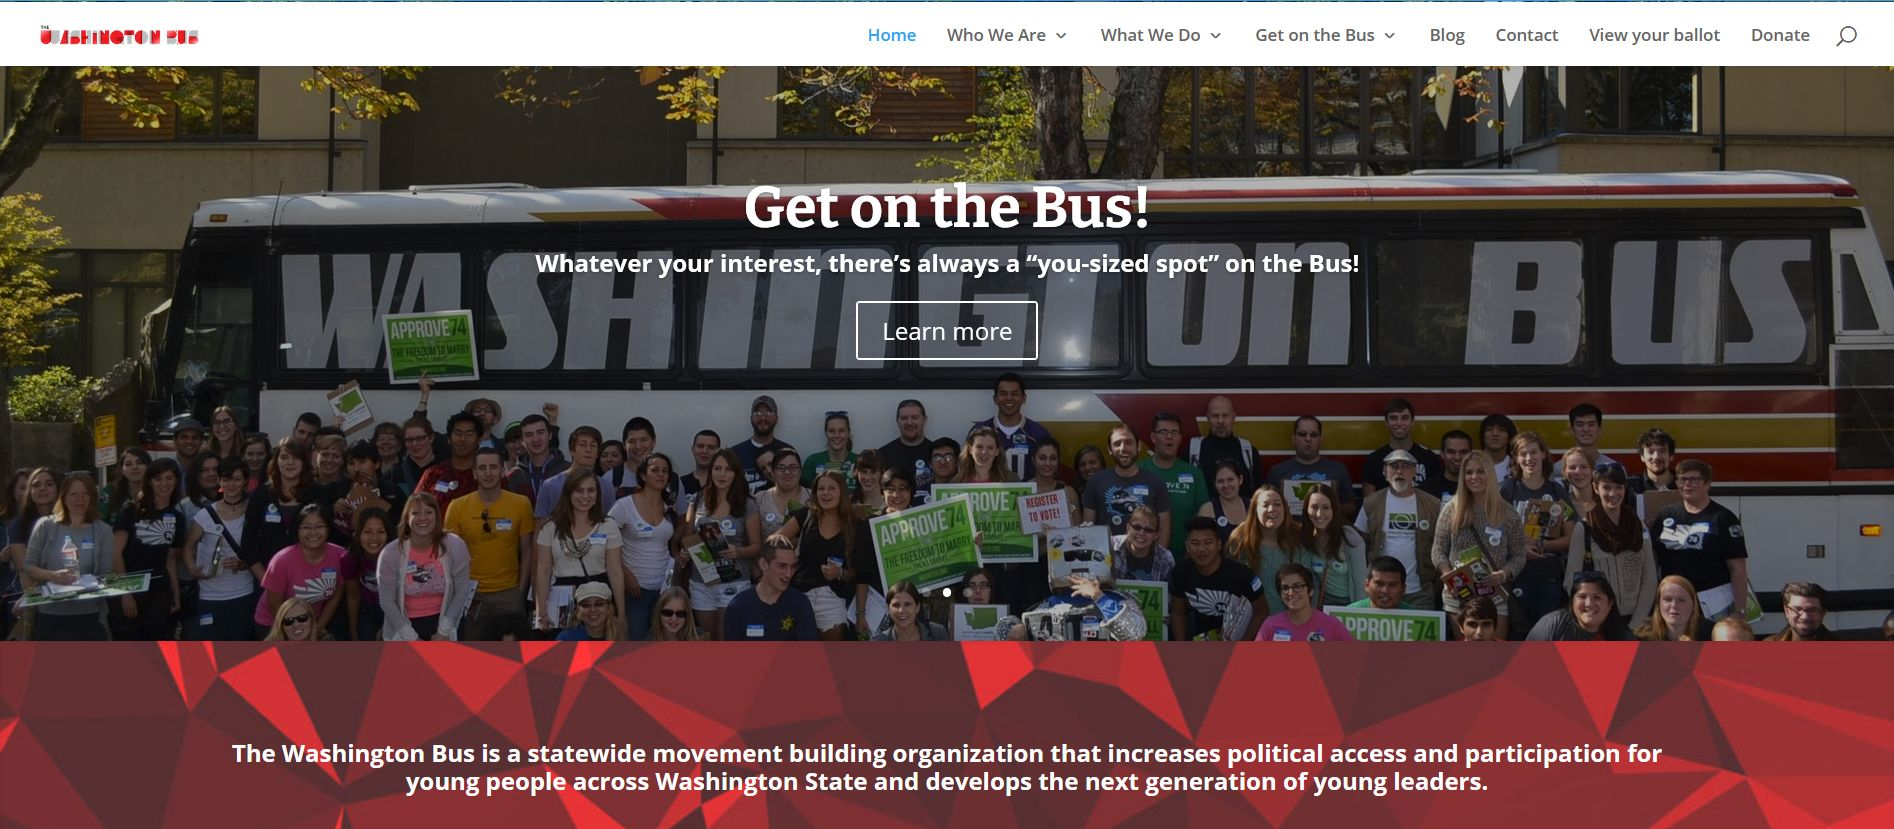 homepage of The Washington Bus with group of people standing in front of a bus holding political signs